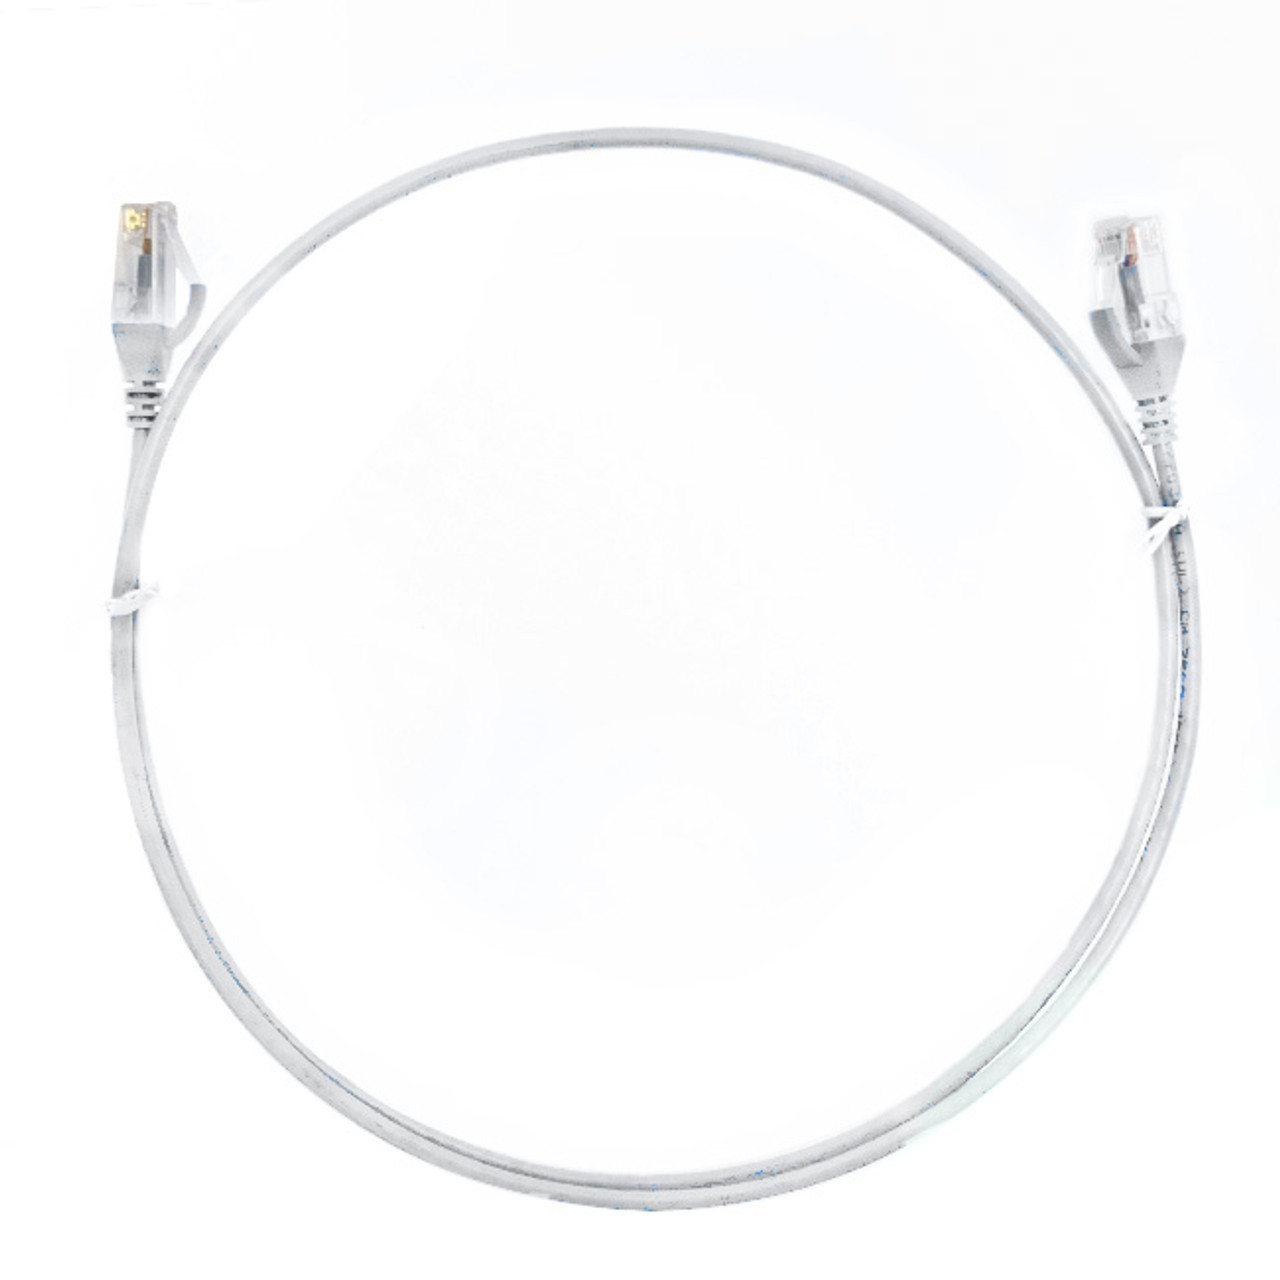 Image for 4m Cat 6 RJ45 RJ45 Ultra Thin LSZH Network Cables  : White CX Computer Superstore